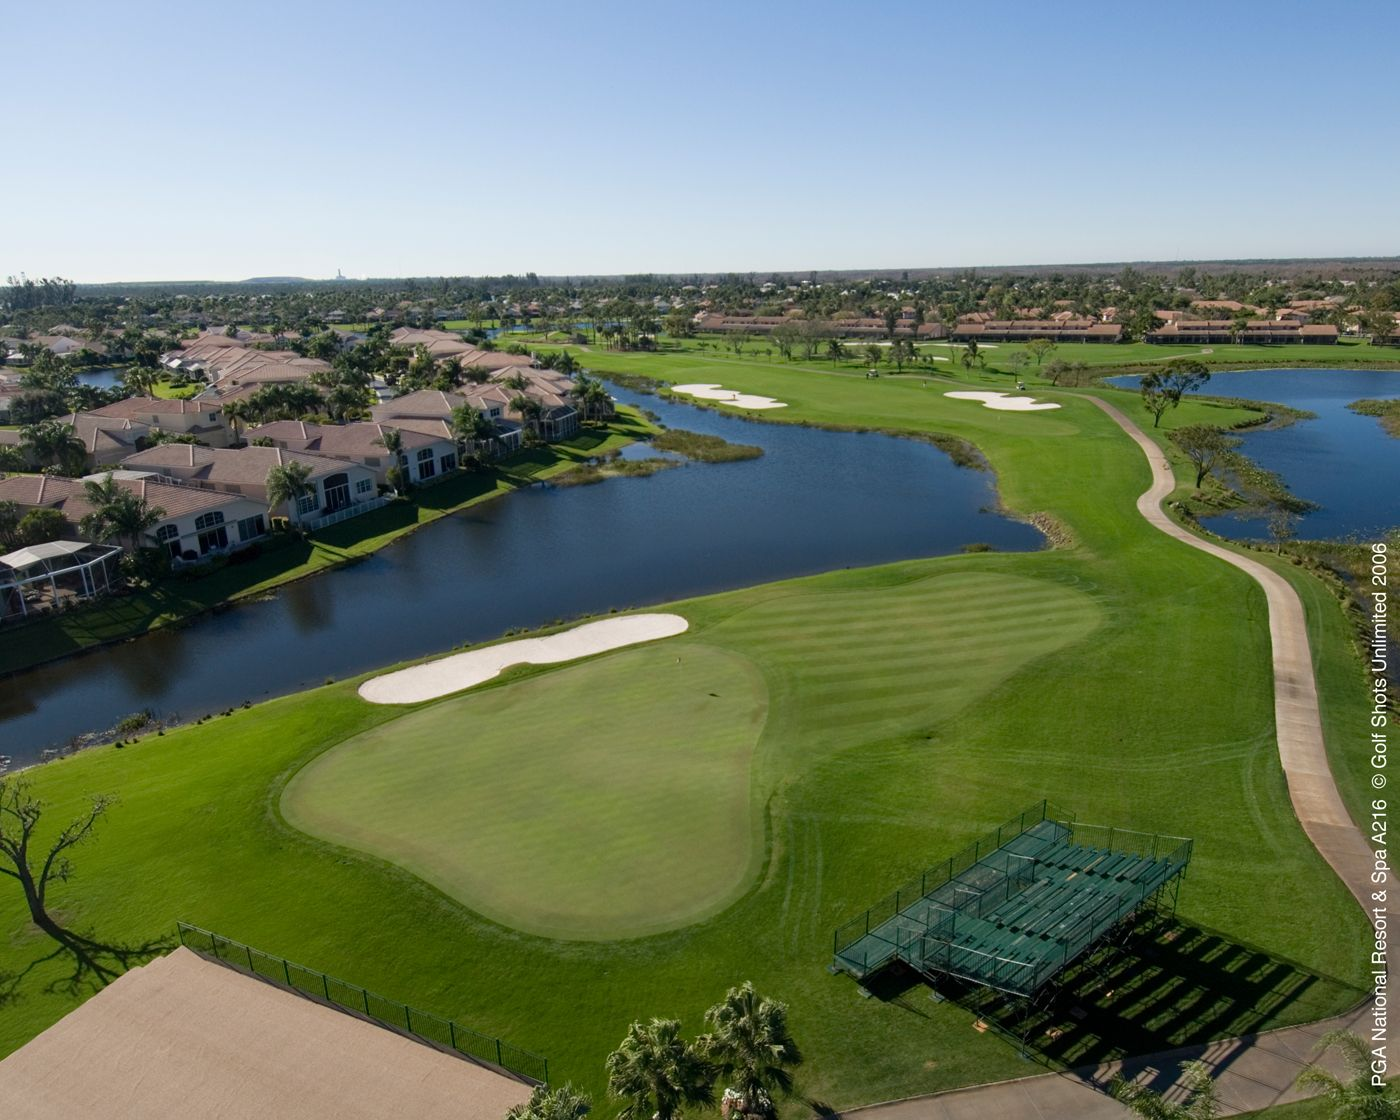 2012 Honda Classic: PGA National Golf Club - Champion Course | 2012 ...